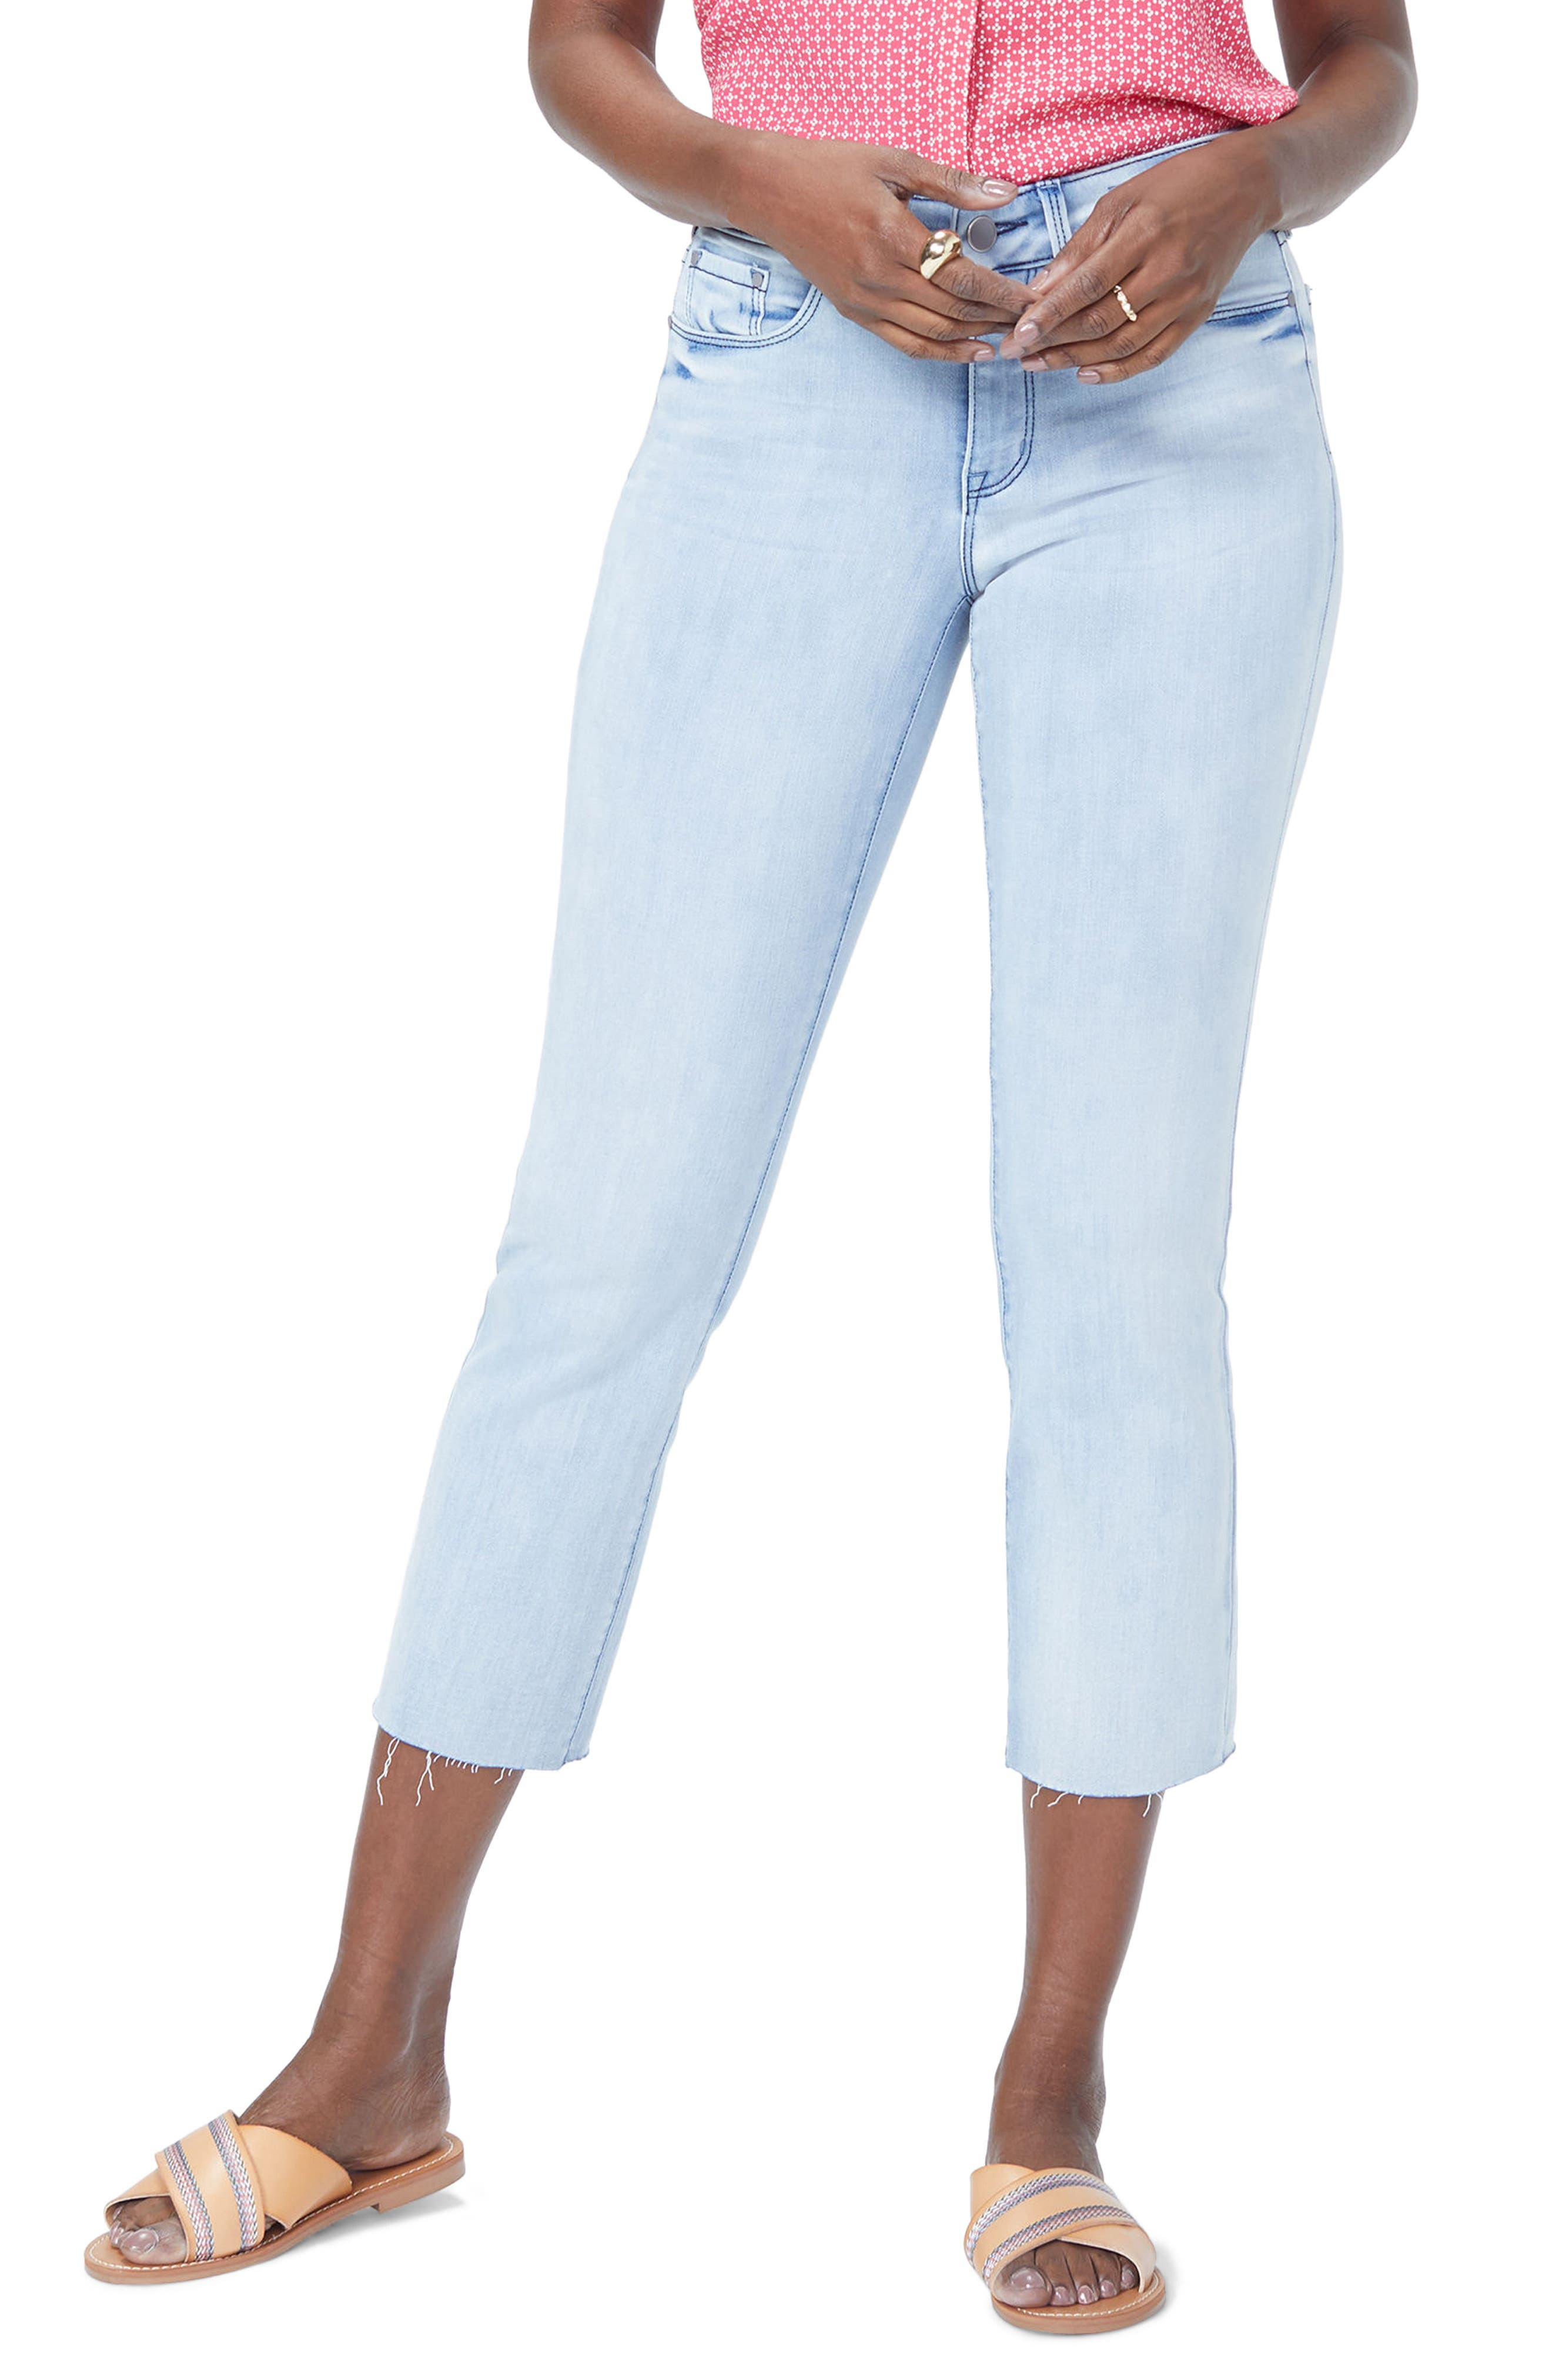 Marilyn Ankle Skinny Jeans,                             Main thumbnail 1, color,                             Stillwater